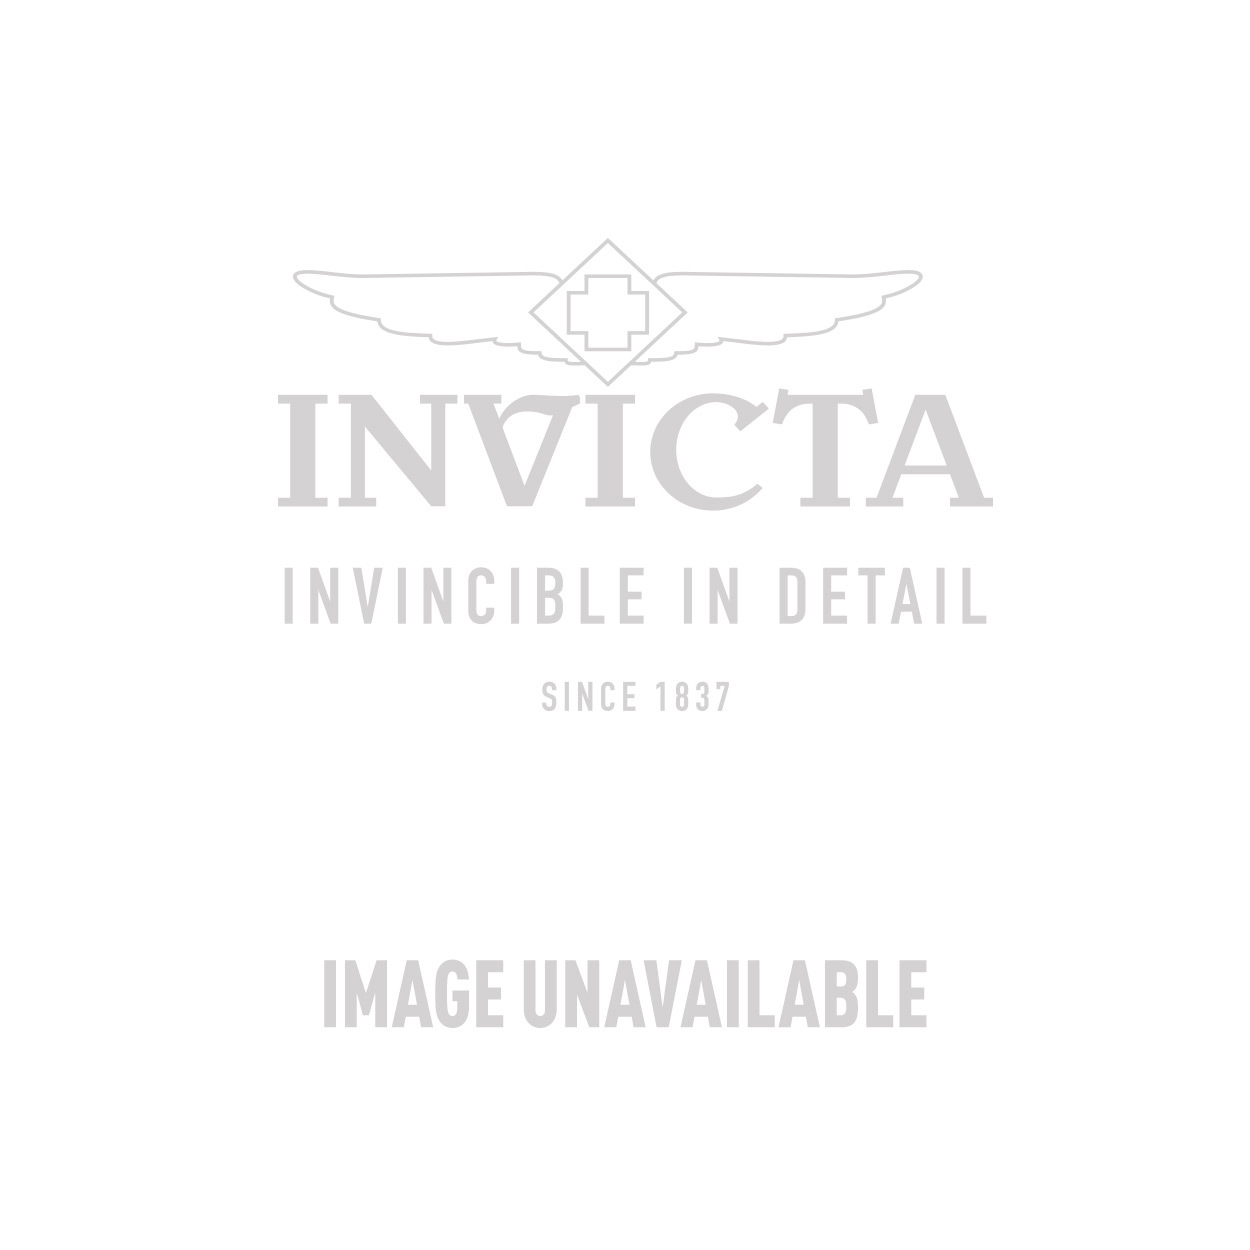 Invicta Specialty Swiss Movement Quartz Watch - Stainless Steel case with White tone Polyurethane band - Model 11384